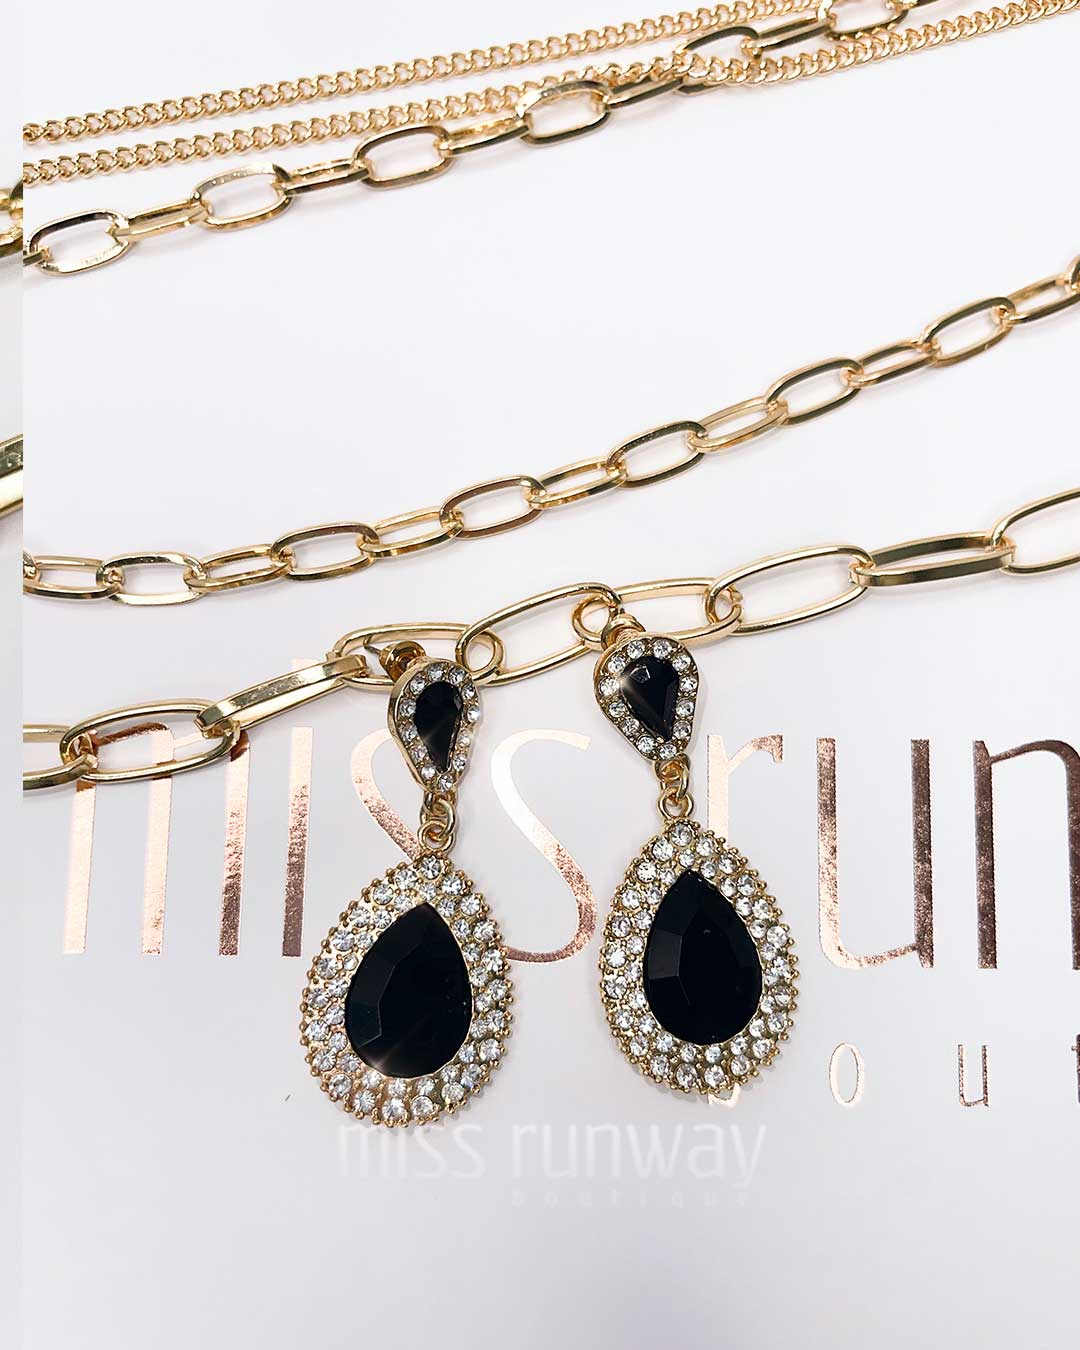 teardrop-jewel-earrings-black